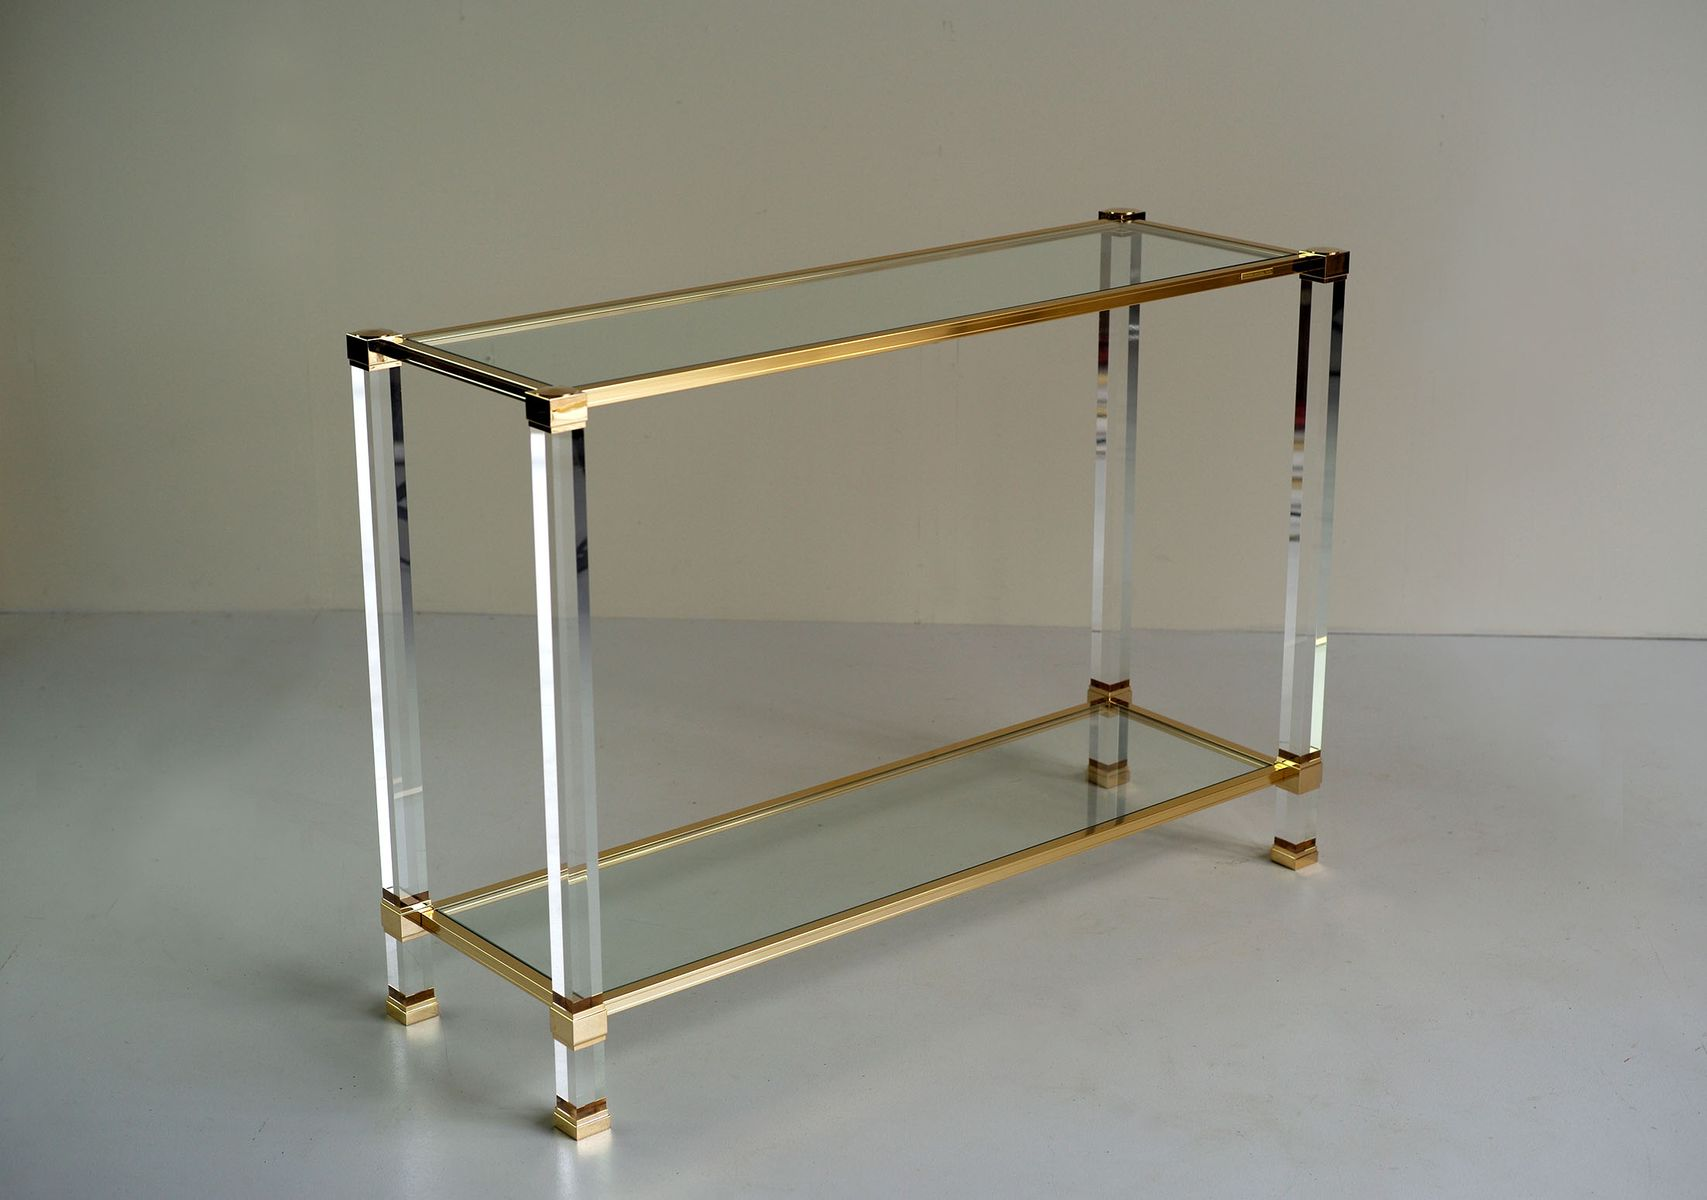 Plexiglass and Gilded Metal Console by Pierre Vandel 1980s for